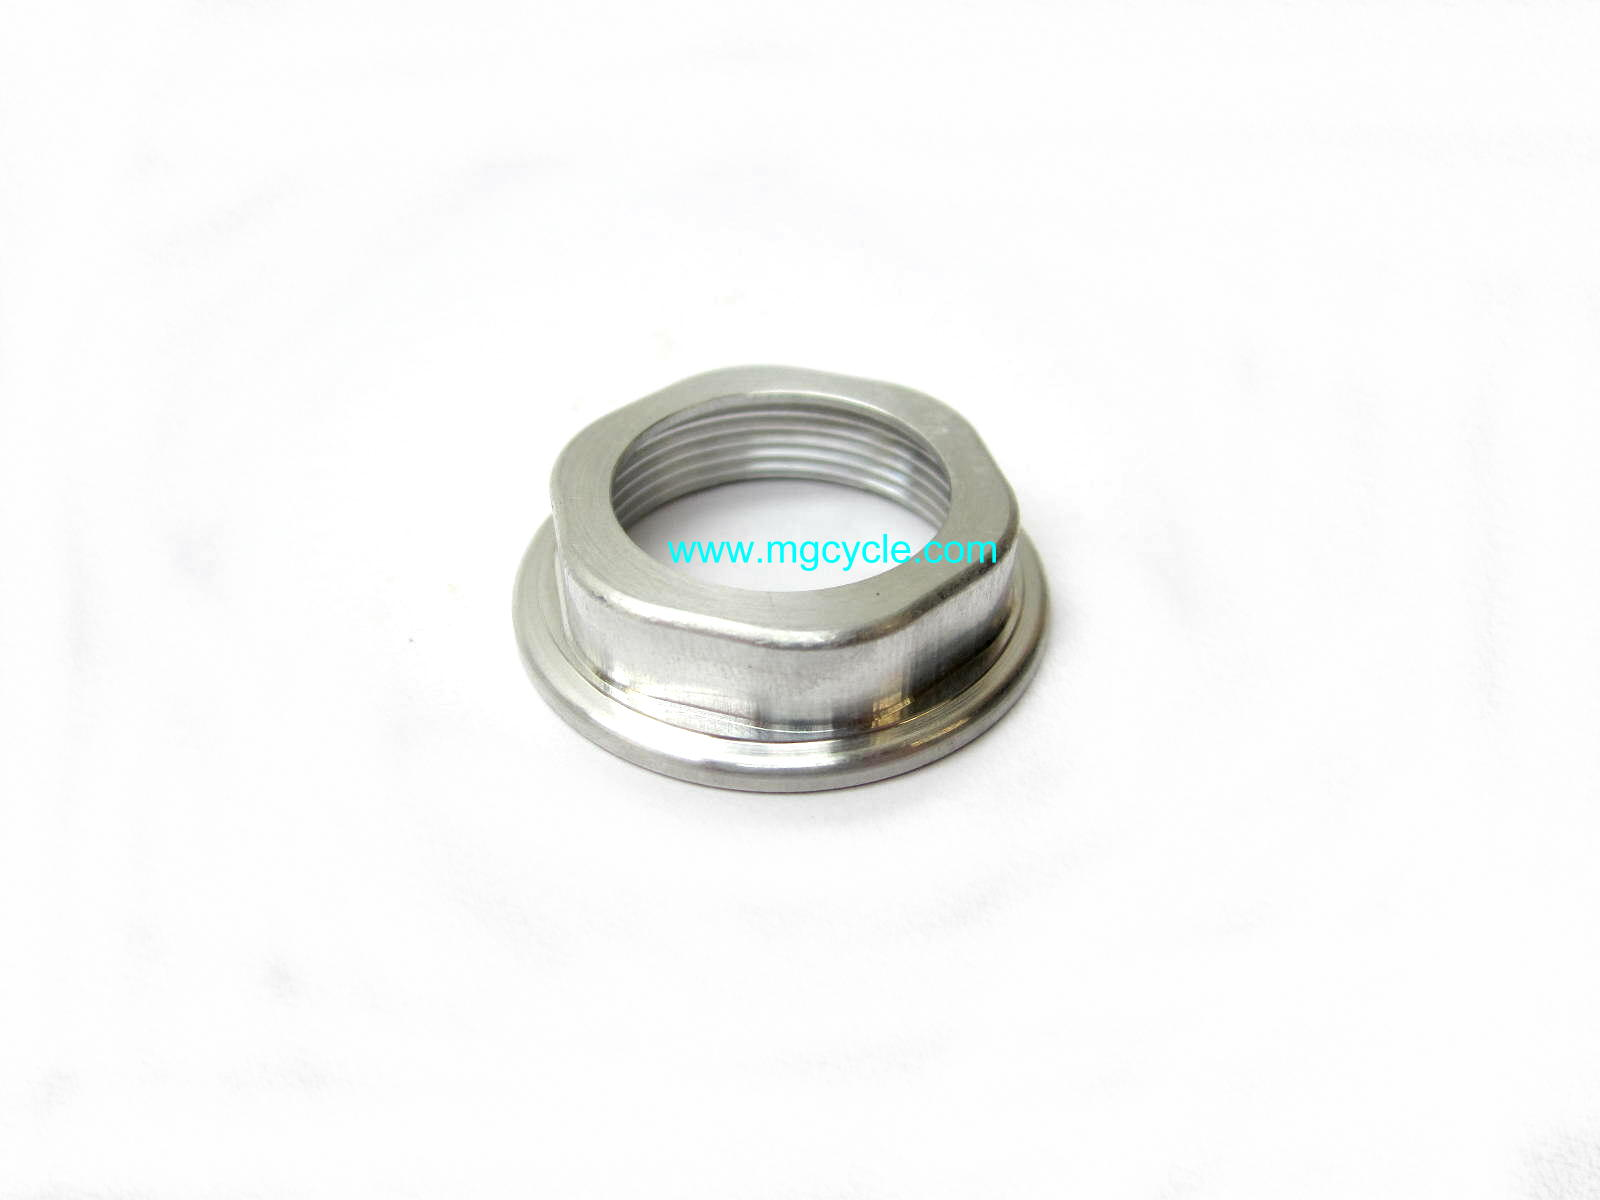 metal ignition switch ring nut, many models